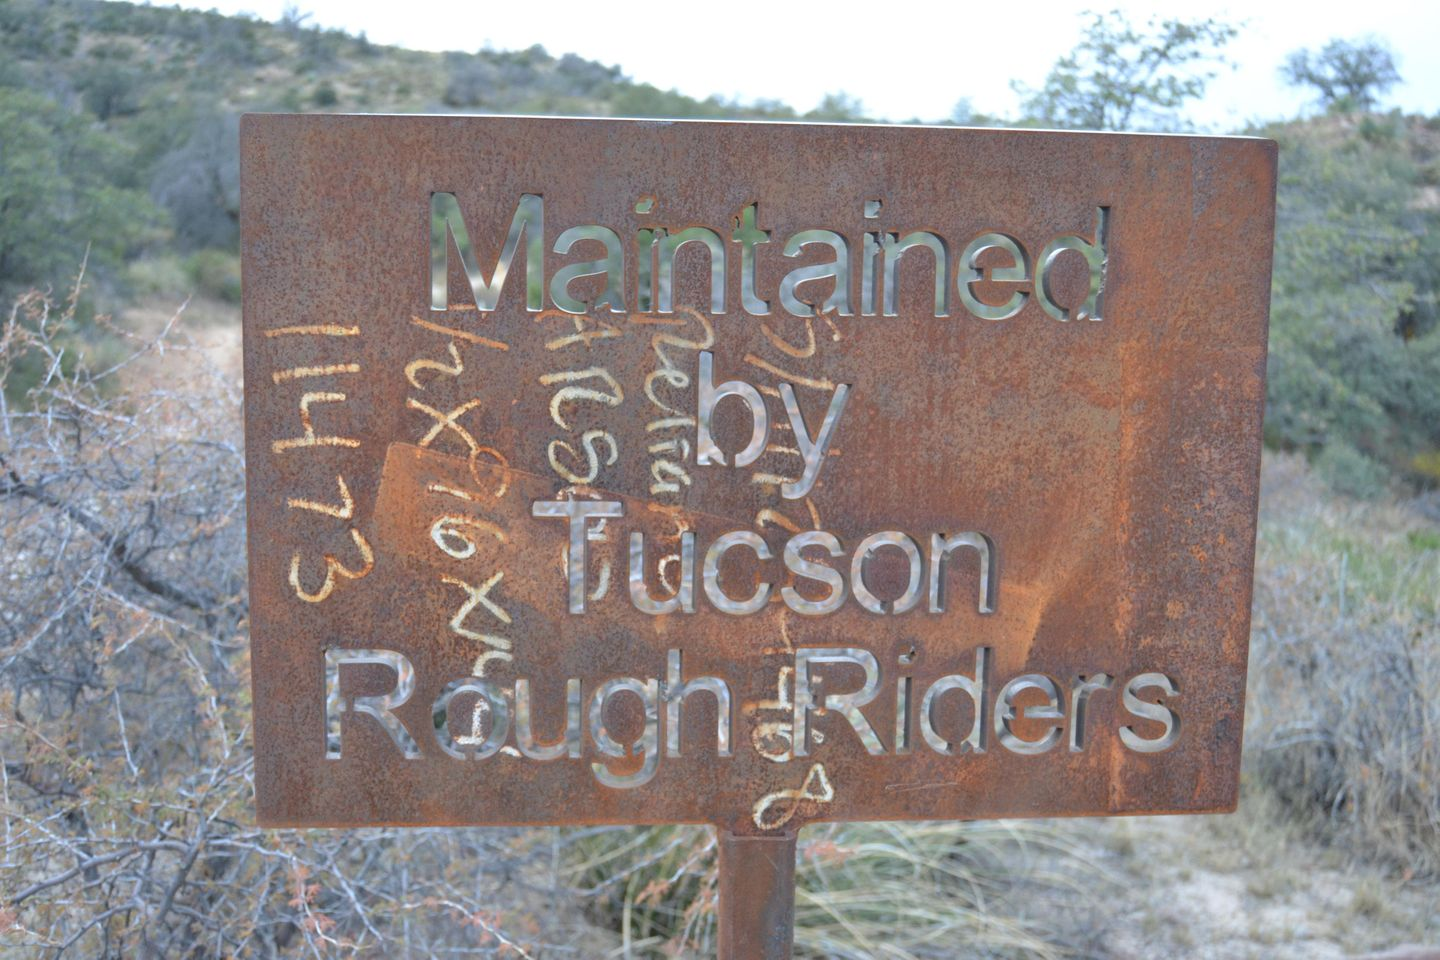 Charouleau Gap / FR# 736 - Waypoint 39: RoughRiders Sign